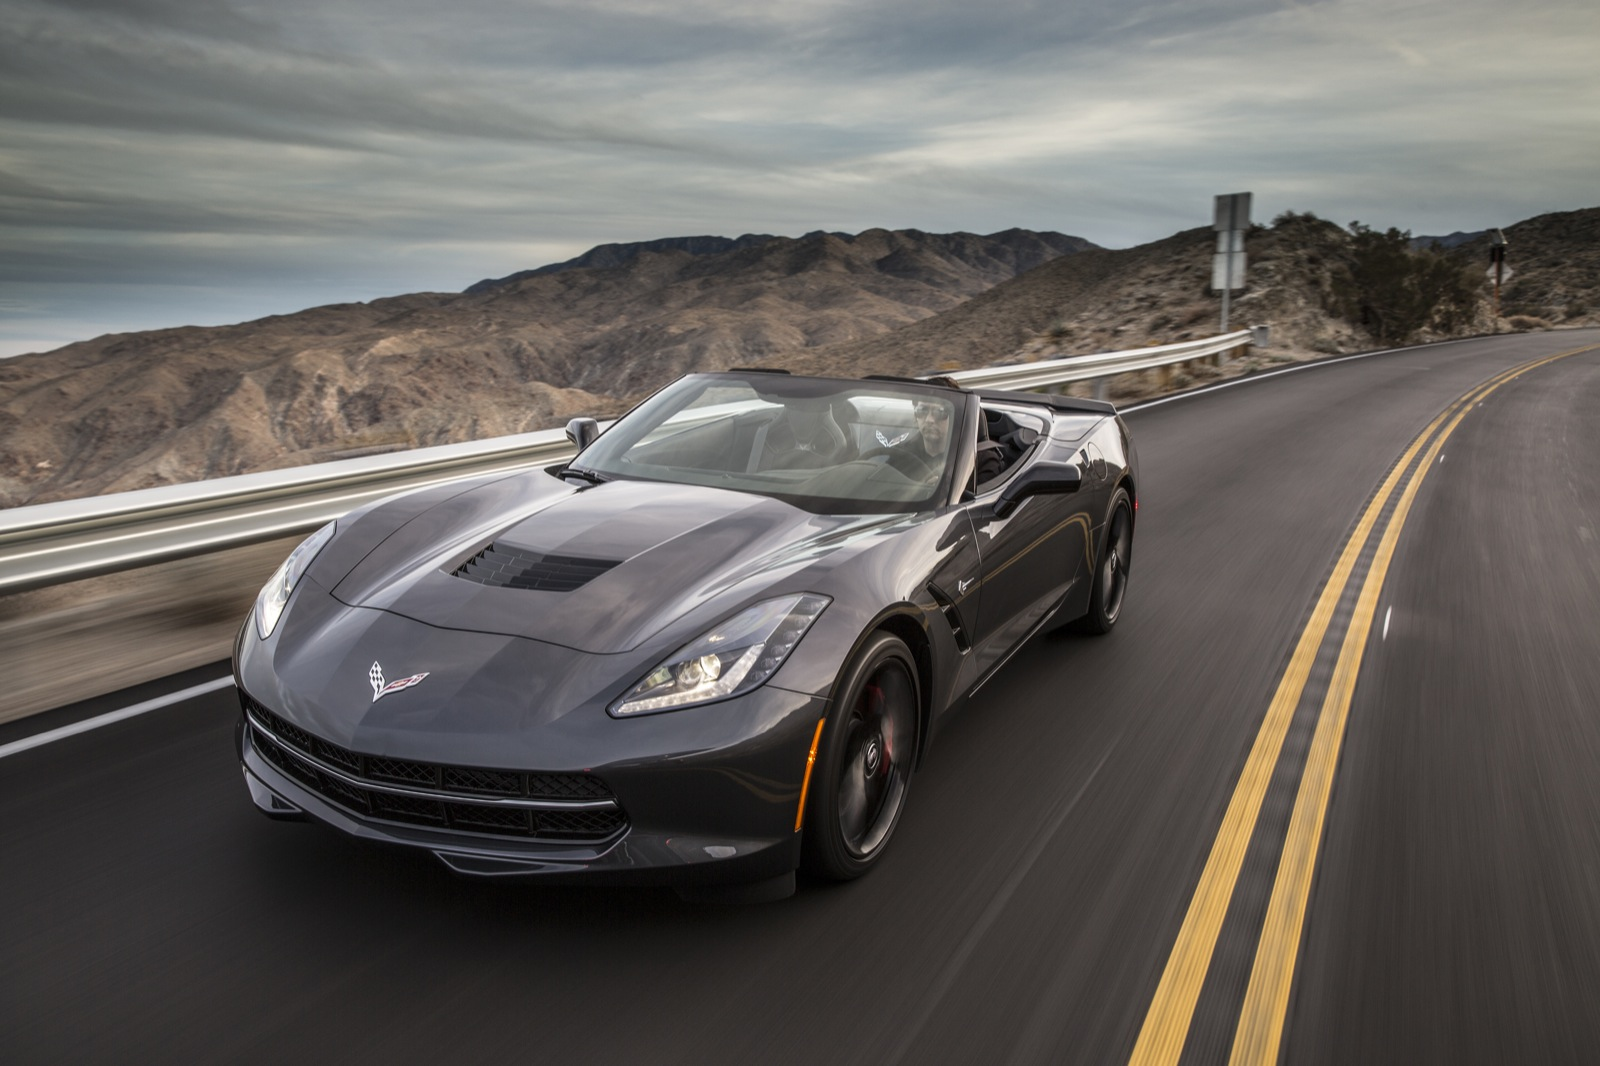 2014 Chevrolet Corvette Stingray Convertible: First Drive